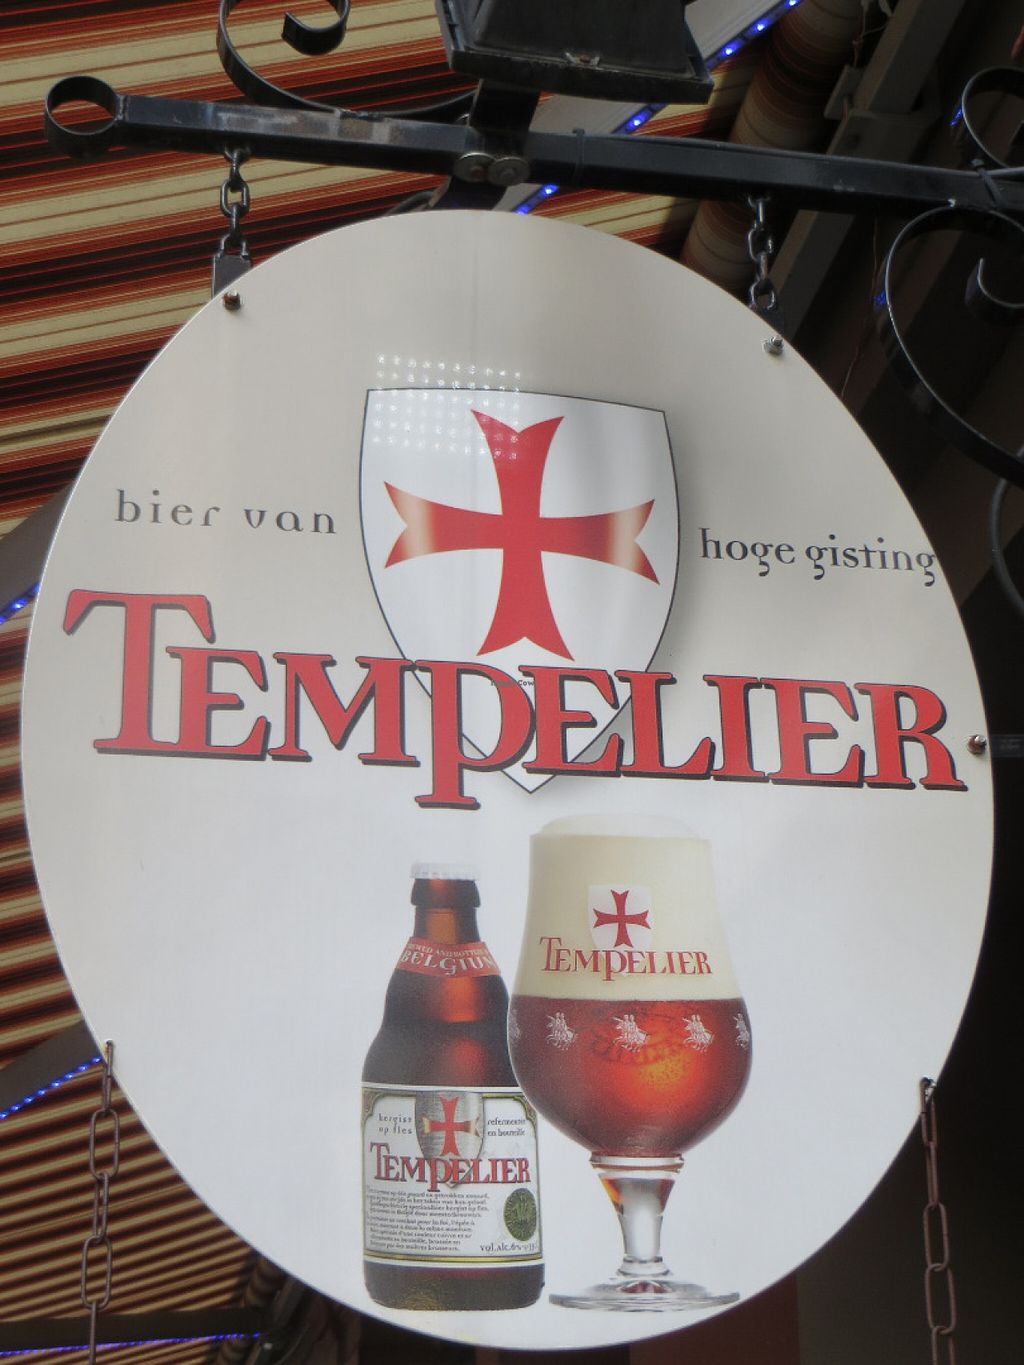 """Photo of Le Tempelier  by <a href=""""/members/profile/VegiAnna"""">VegiAnna</a> <br/>restaurant logo <br/> June 14, 2016  - <a href='/contact/abuse/image/74970/153900'>Report</a>"""